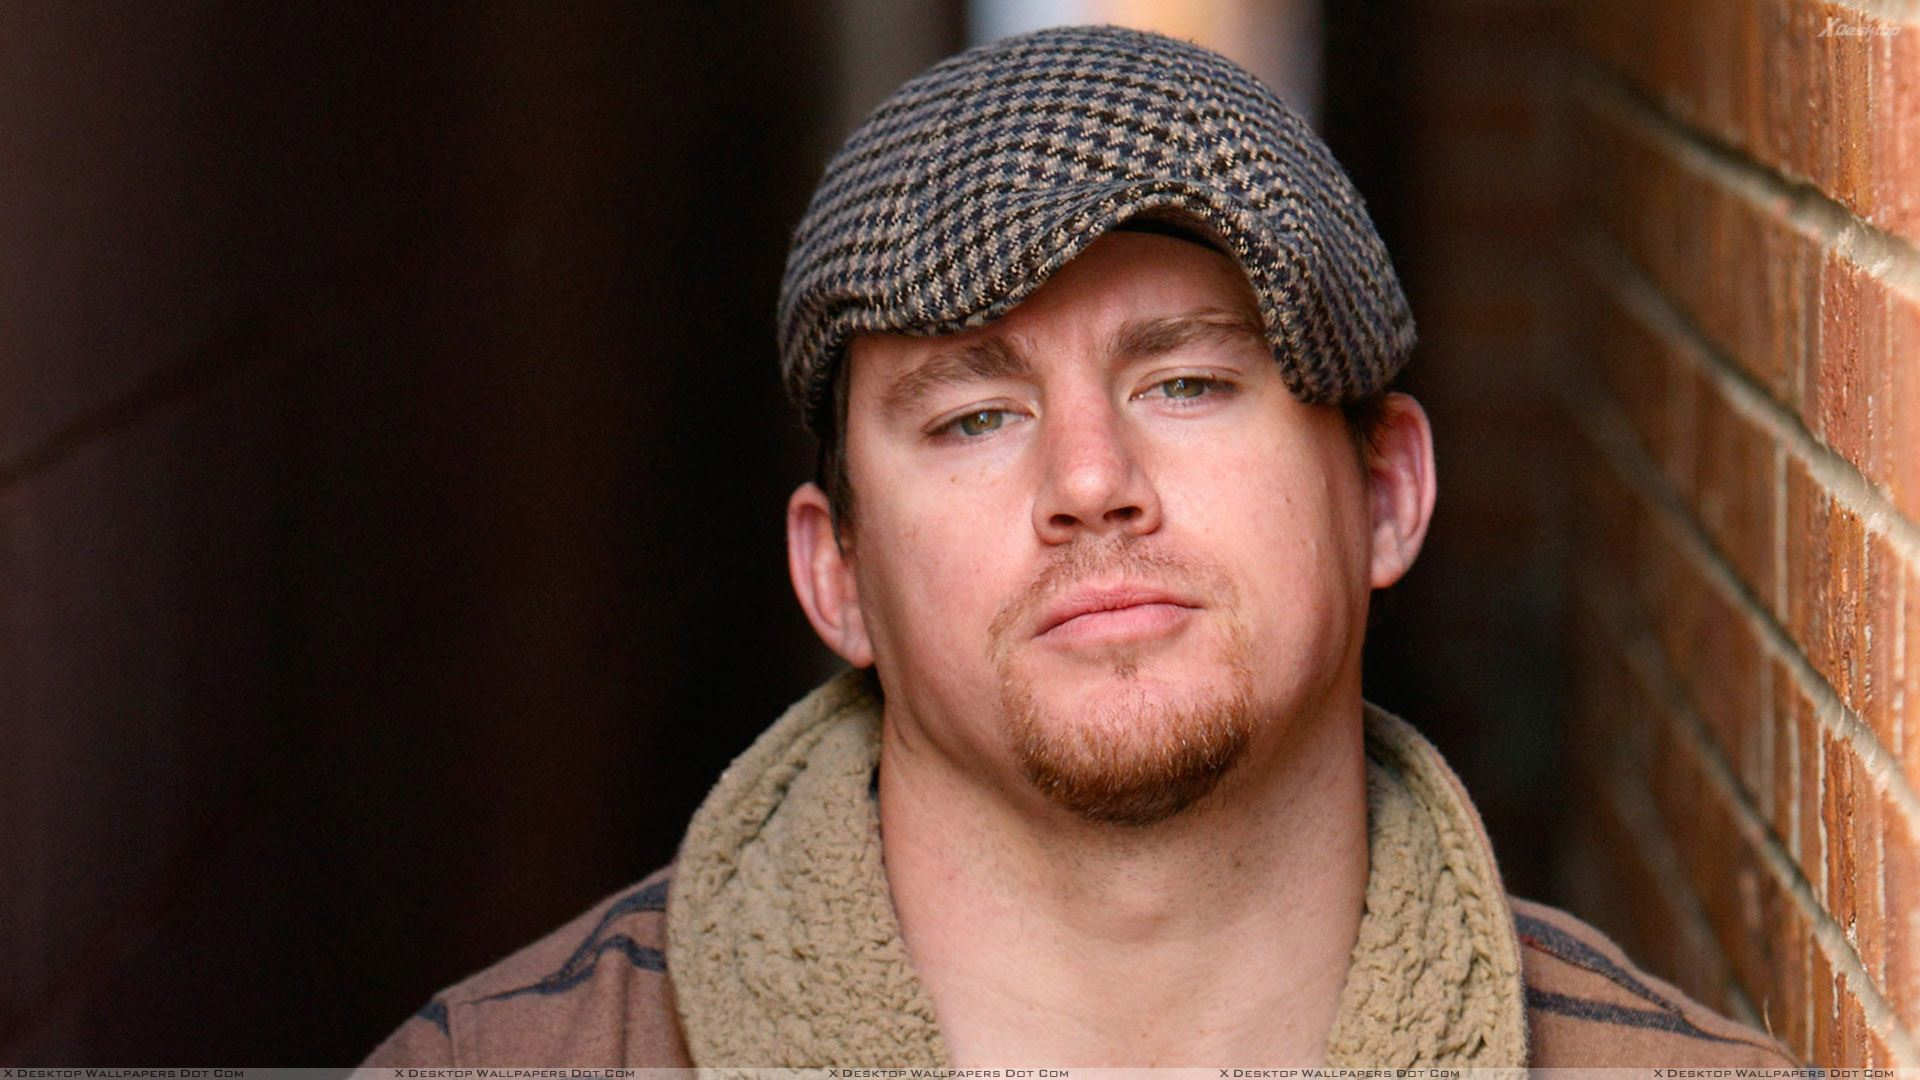 channing tatum wearing cap and looking front wallpaper